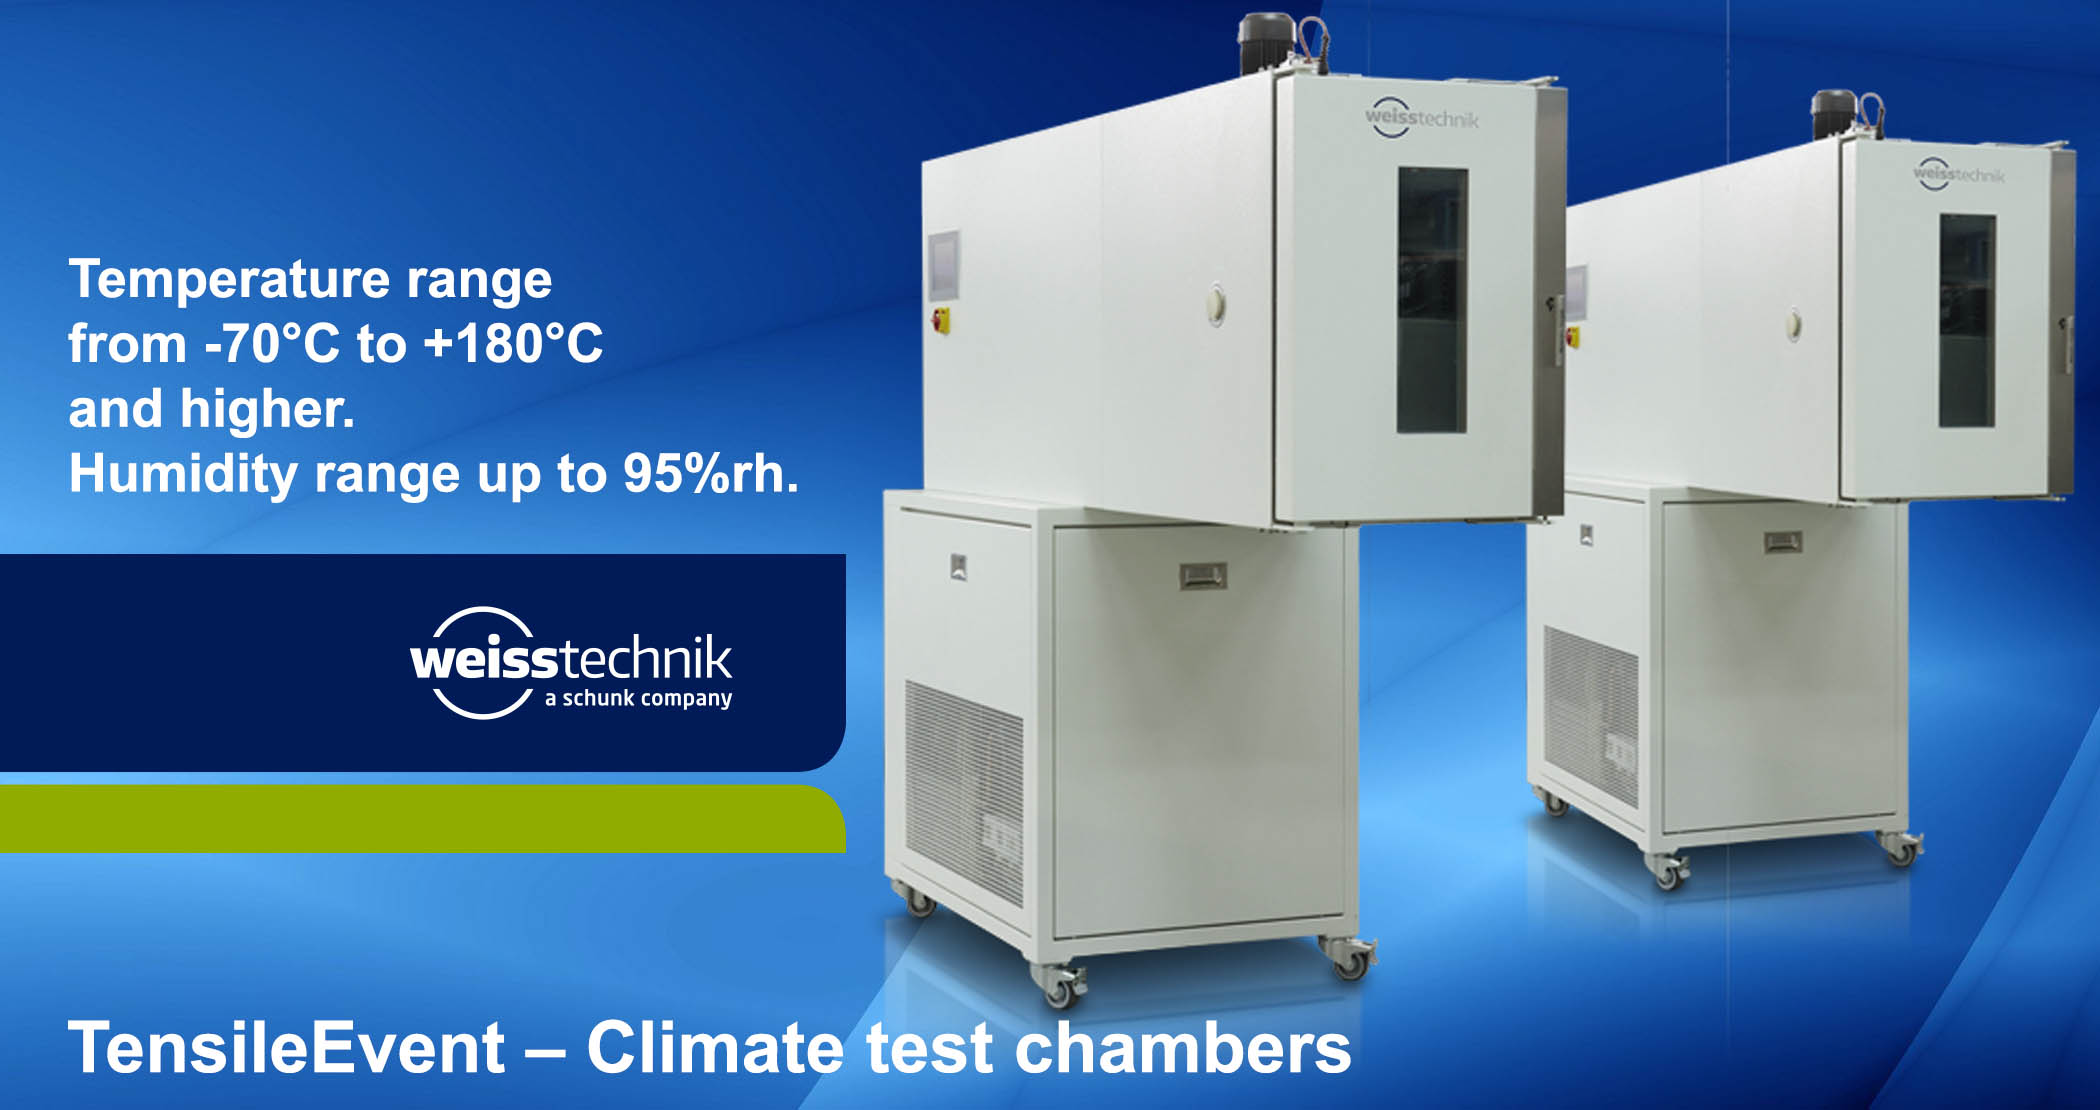 TensileEvent climate test chambers